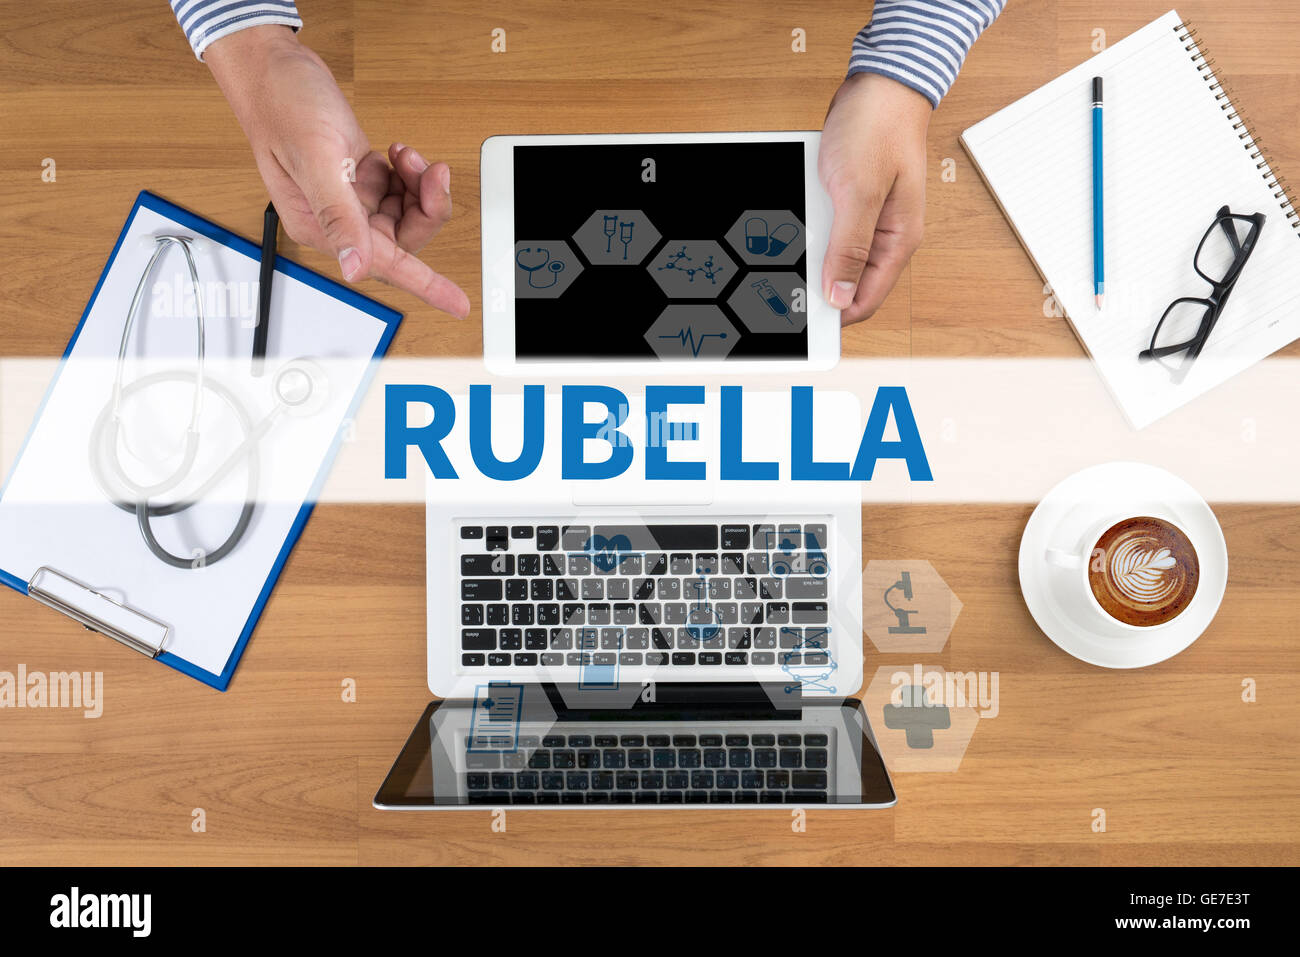 RUBELLA Doctor touch digital tablet, desktop with medical equipment on background, top view, coffee Stock Photo